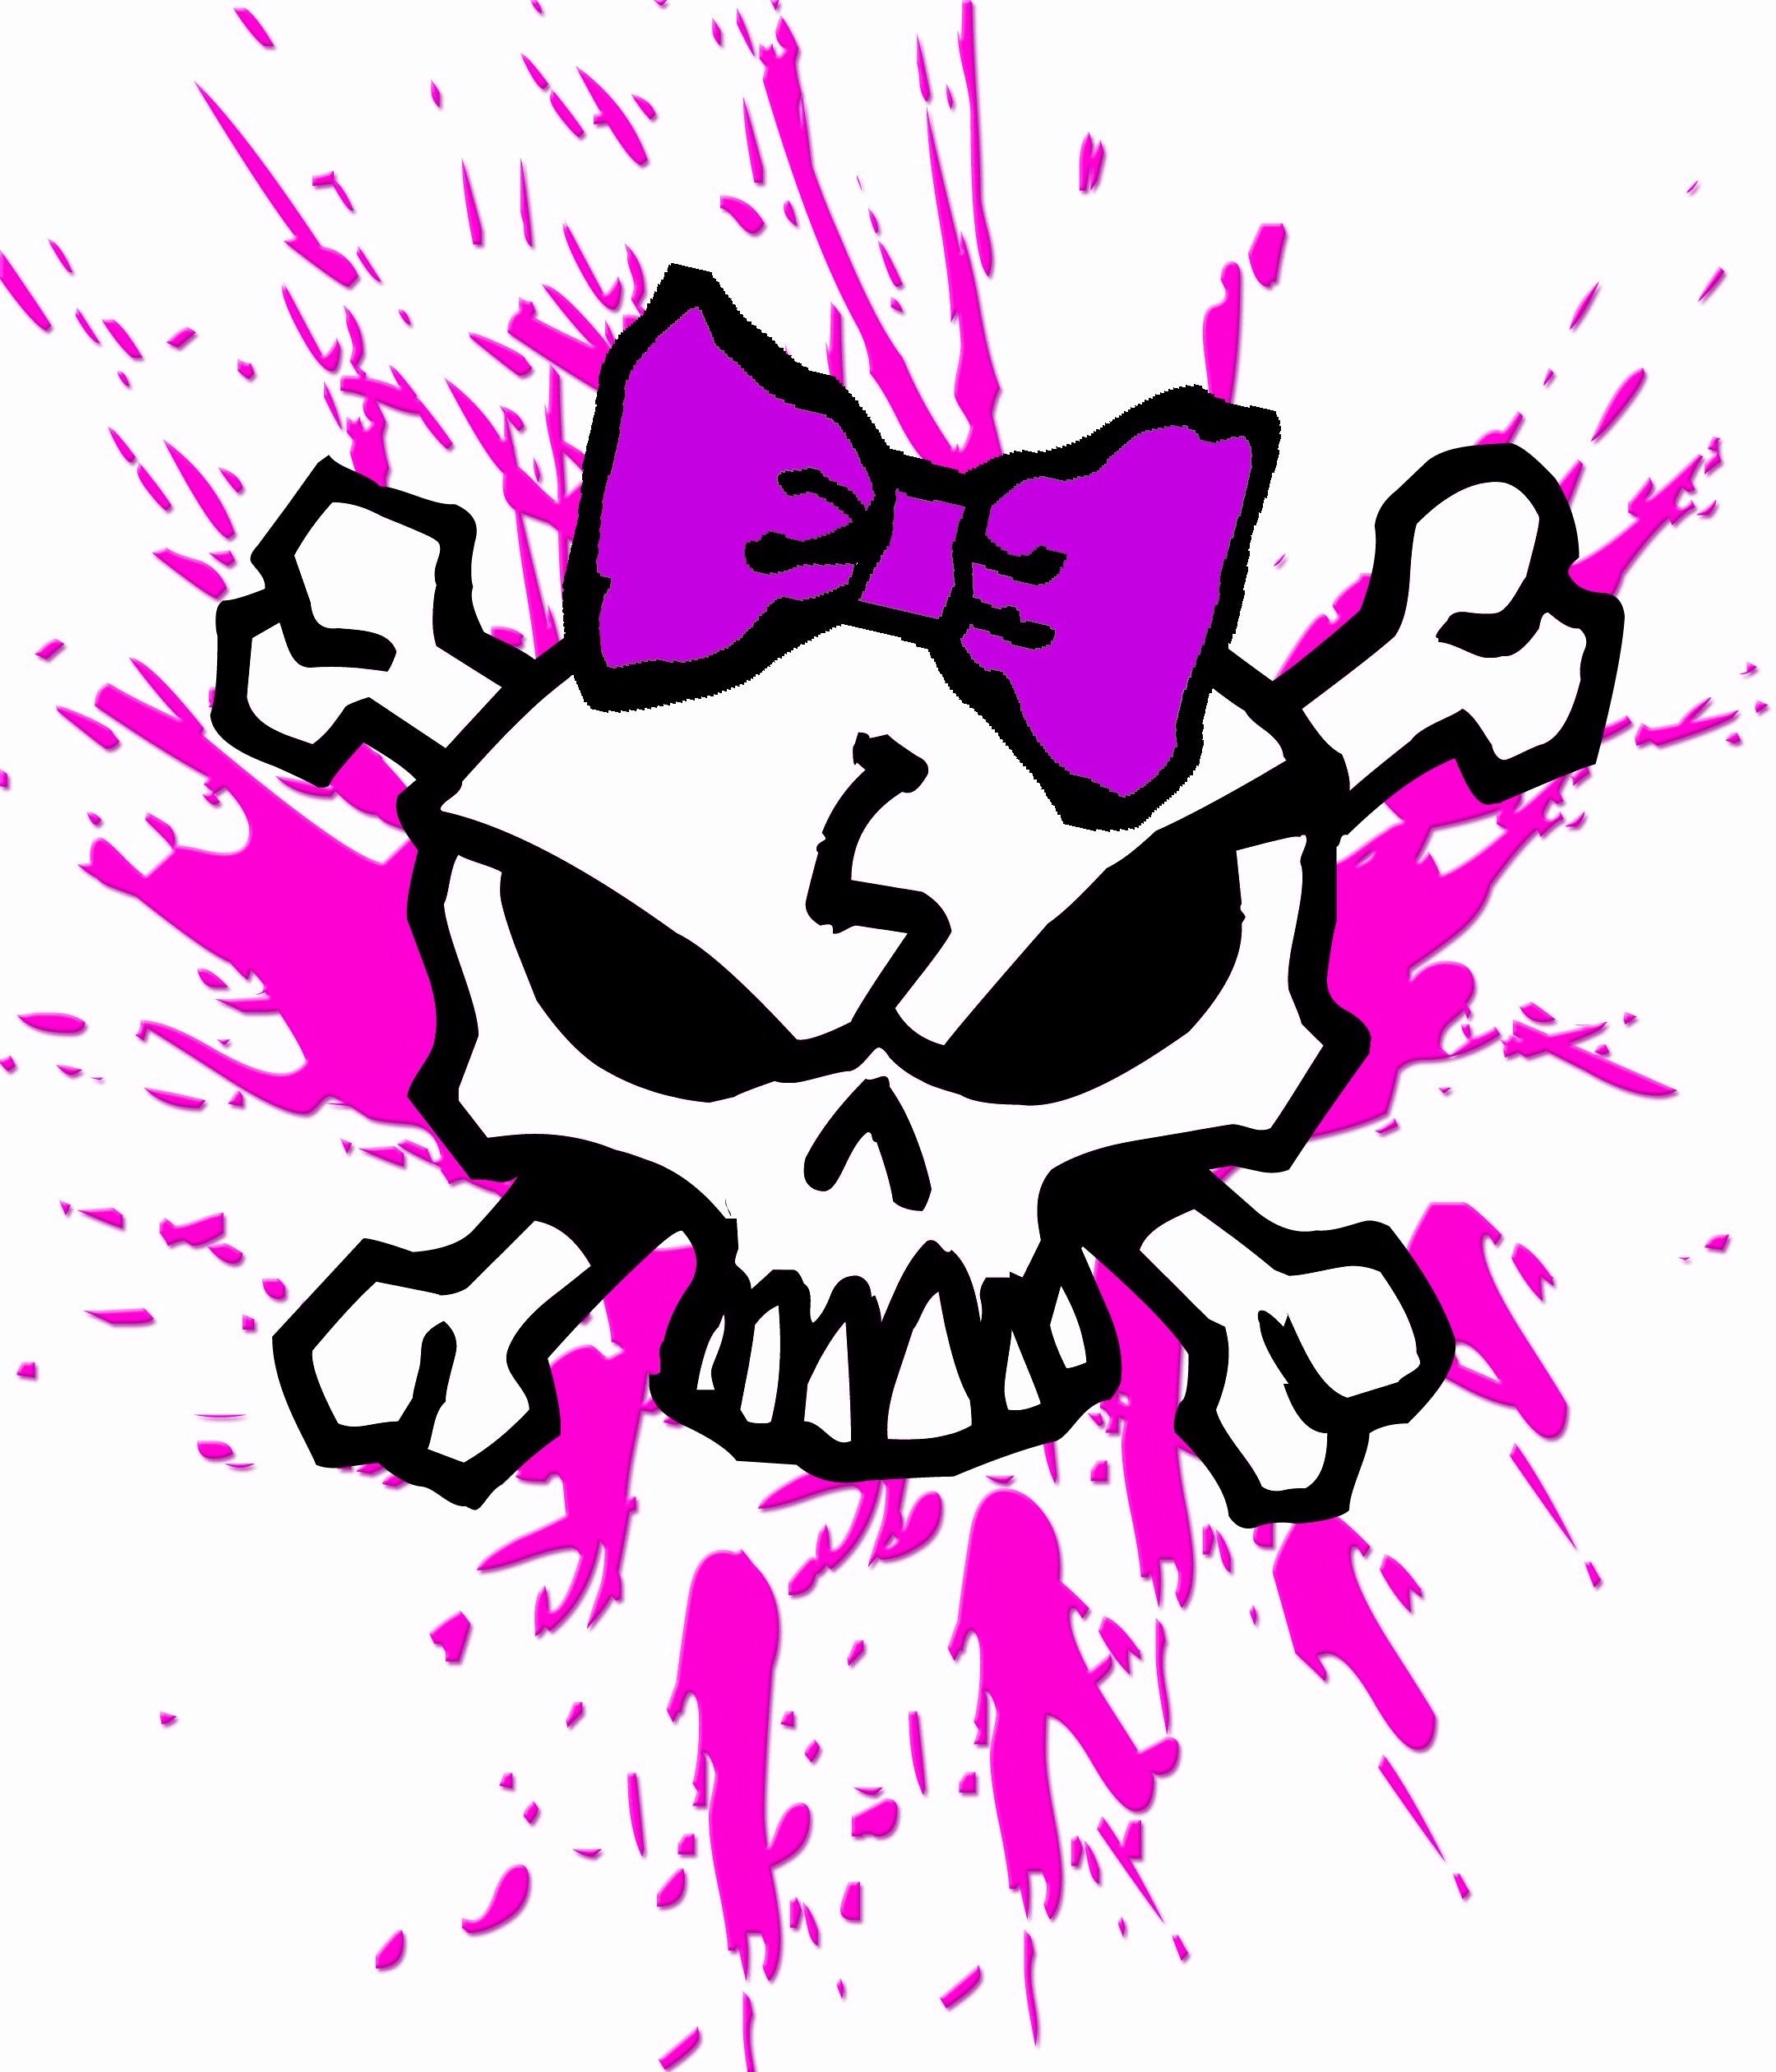 2160x2520 GIRLY SKULL WITH BOW AND PINK BLOOD SPLATTERS, GIRL SKULL T-Shirt .